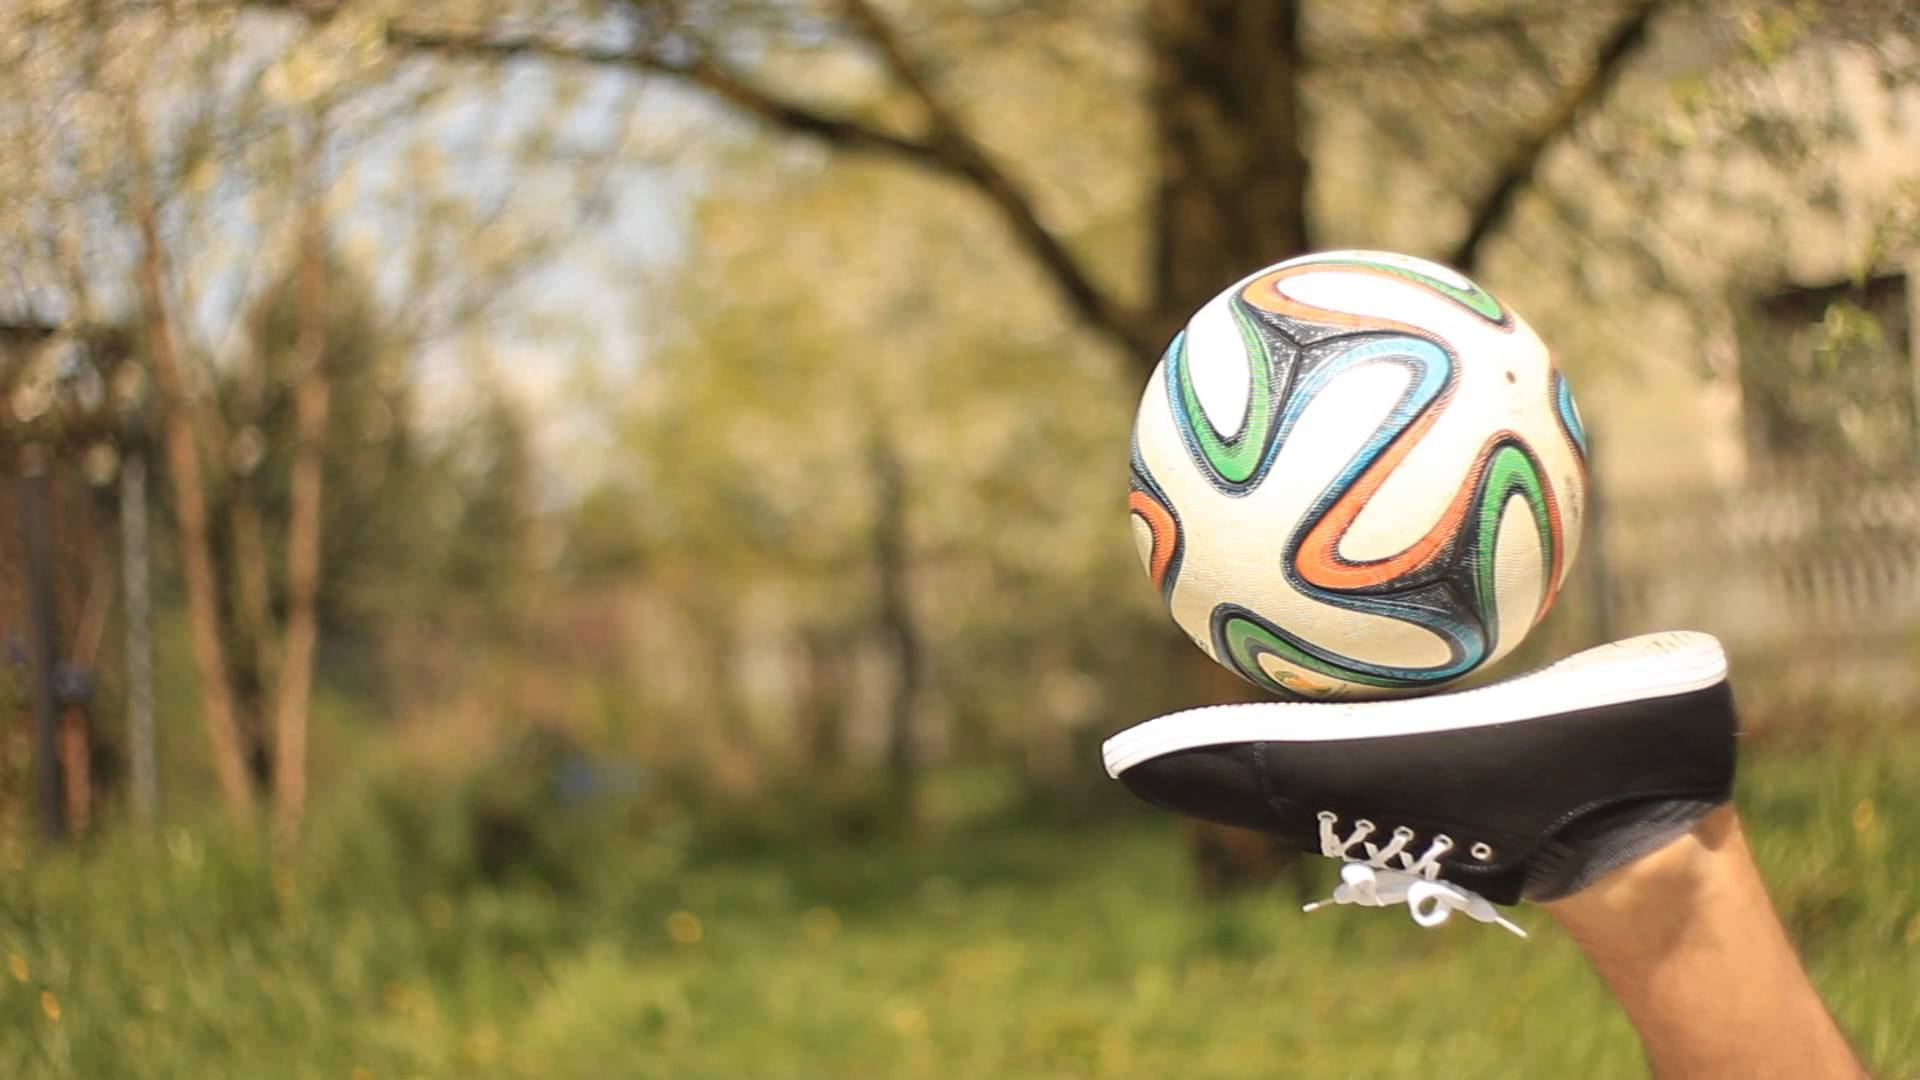 Start Practicing Freestyle Football